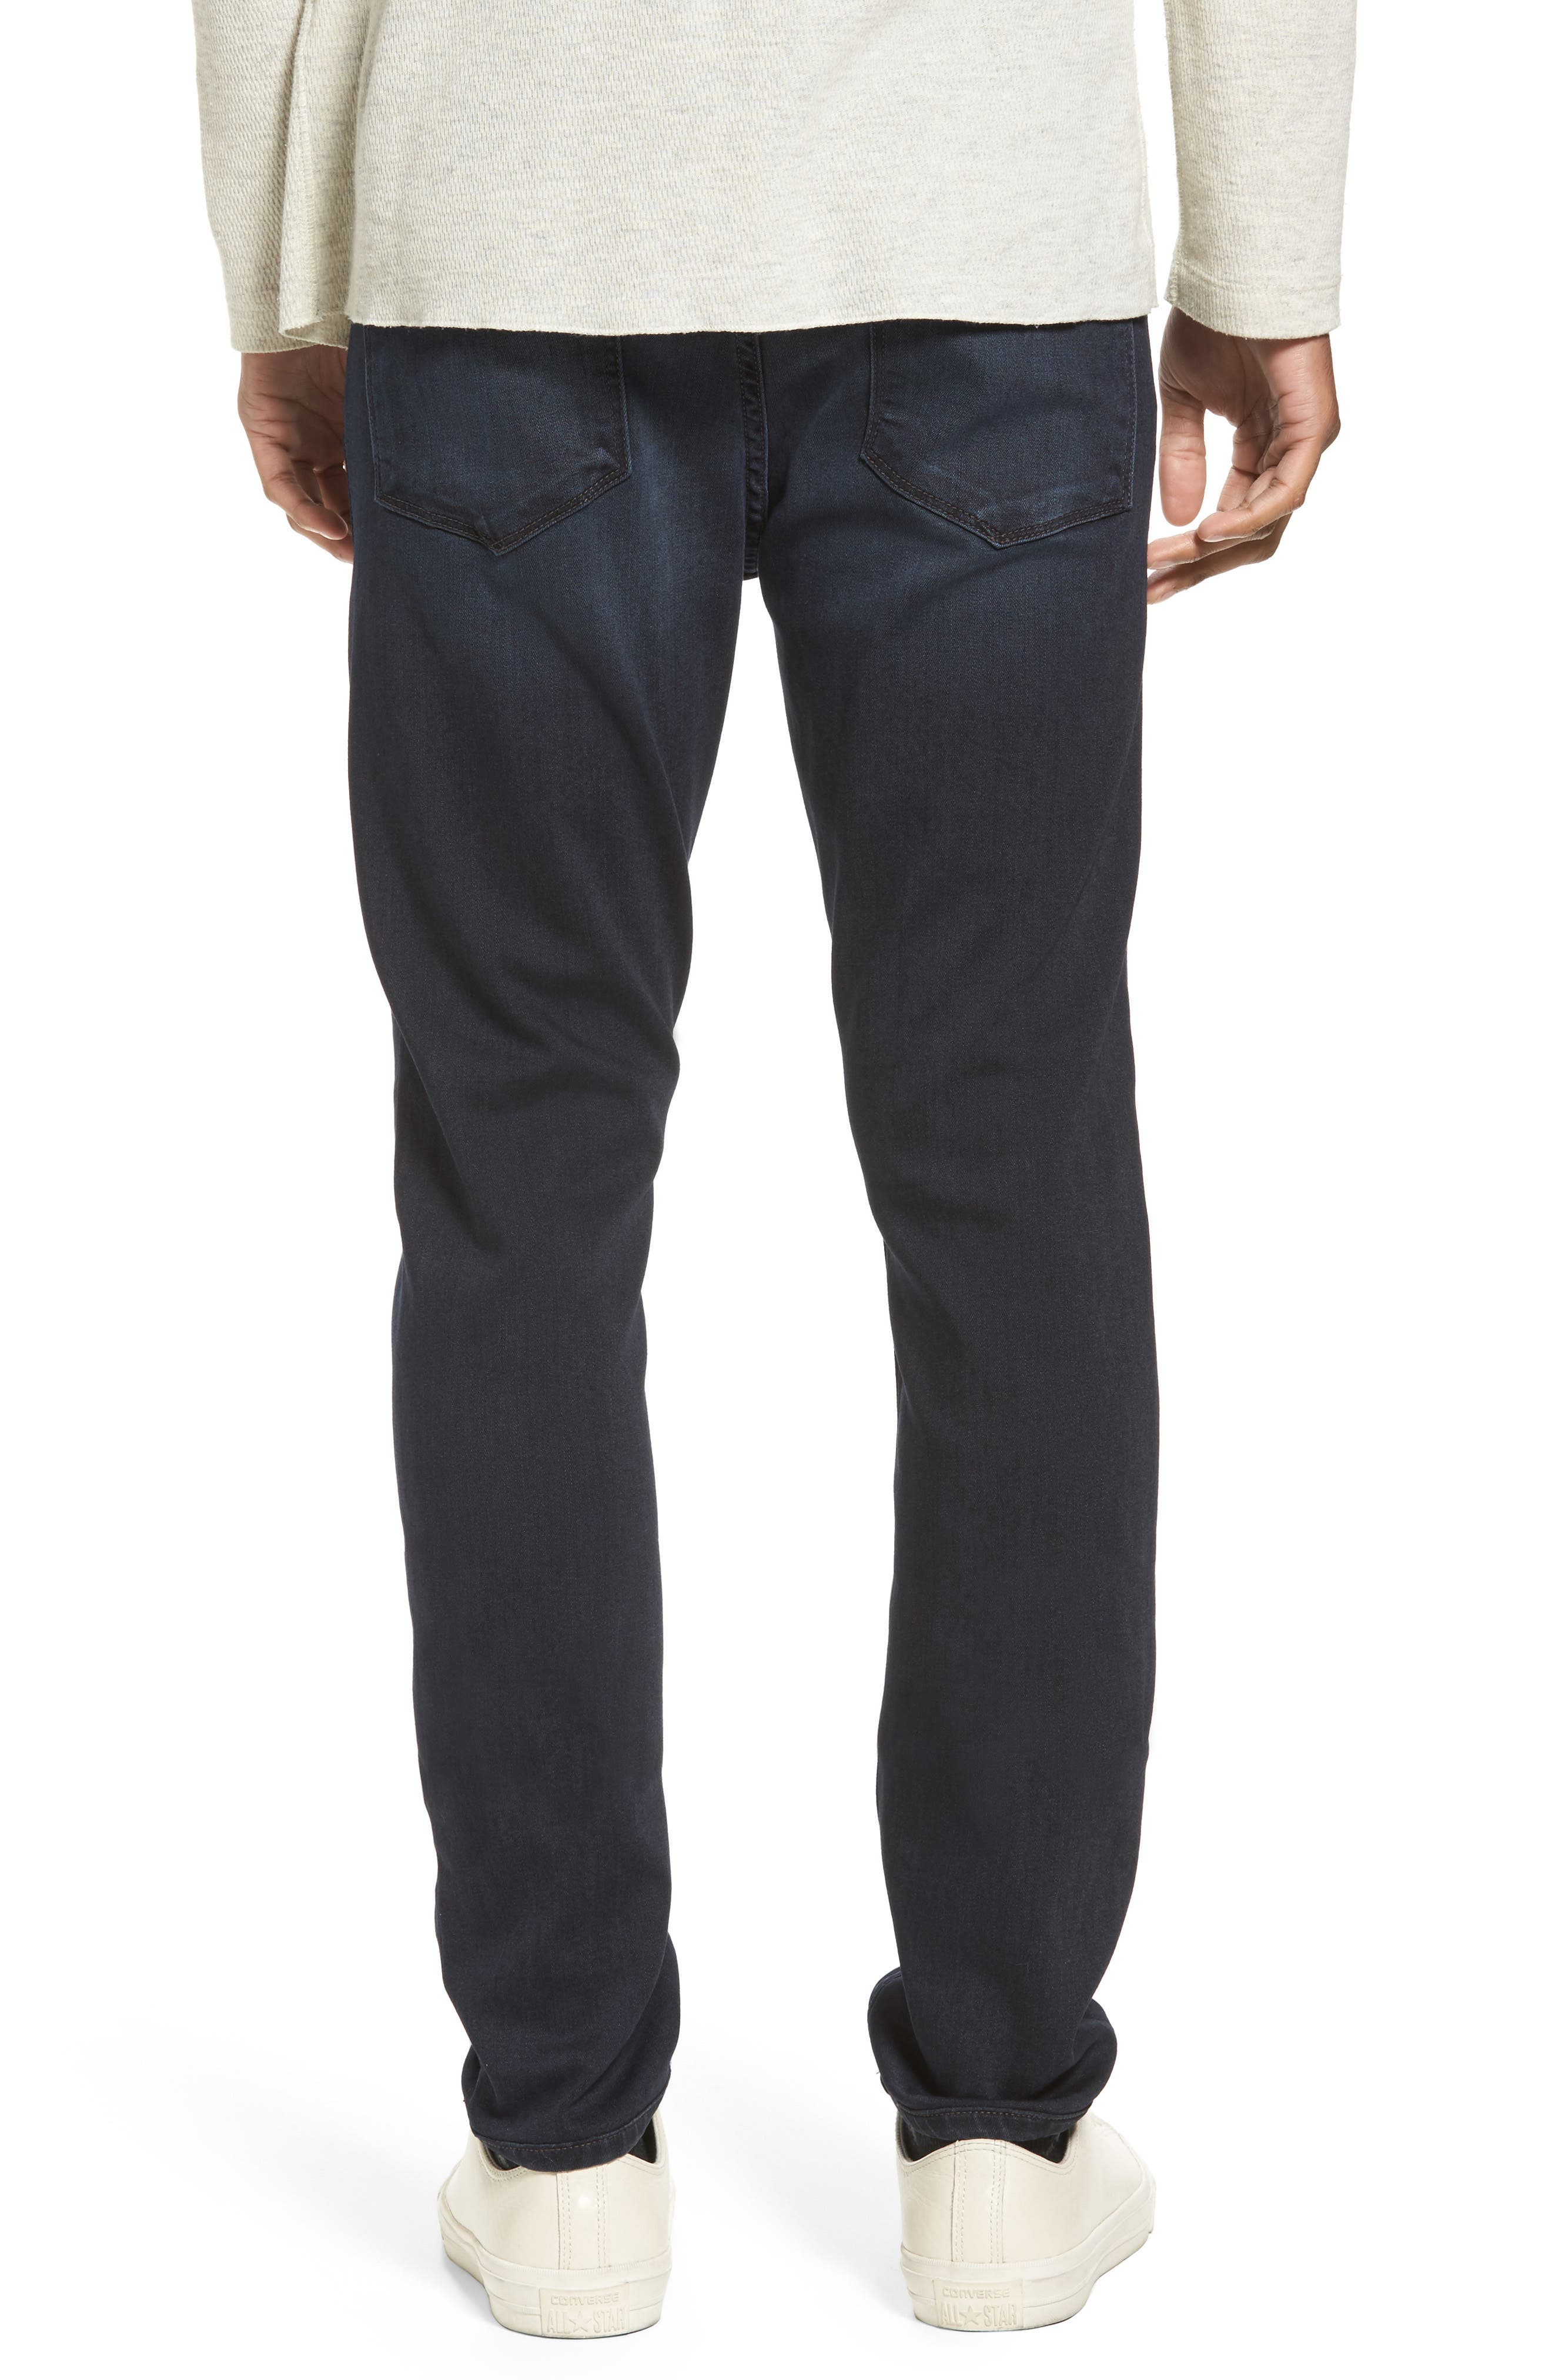 Croft Skinny Fit Jeans,                             Alternate thumbnail 2, color,                             Cecil